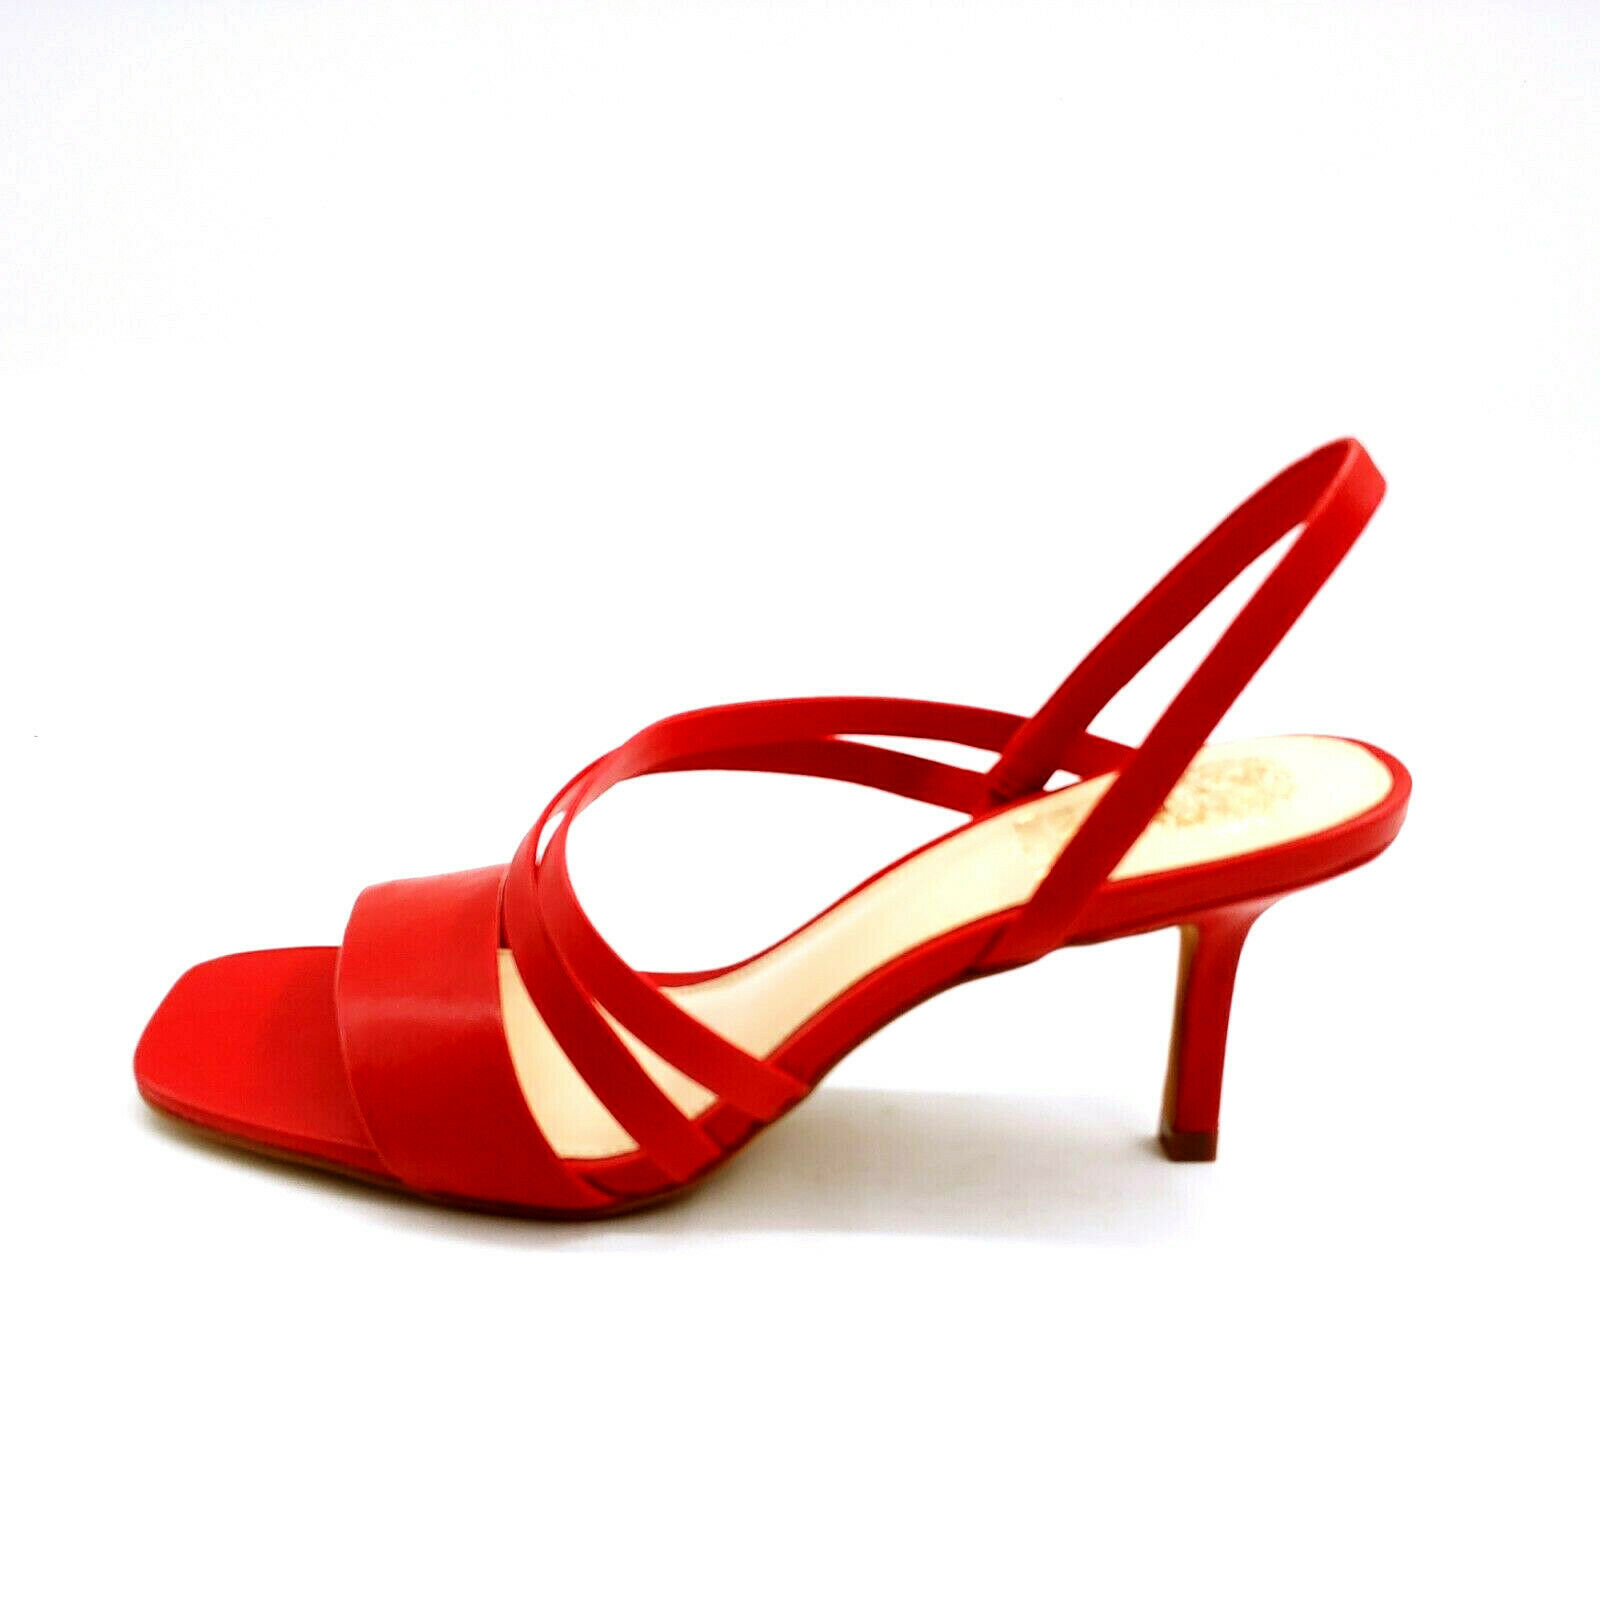 Primary image for Vince Camuto Womans Savesha Leather Strappy Heeled Sandals Razz Red 7.5M